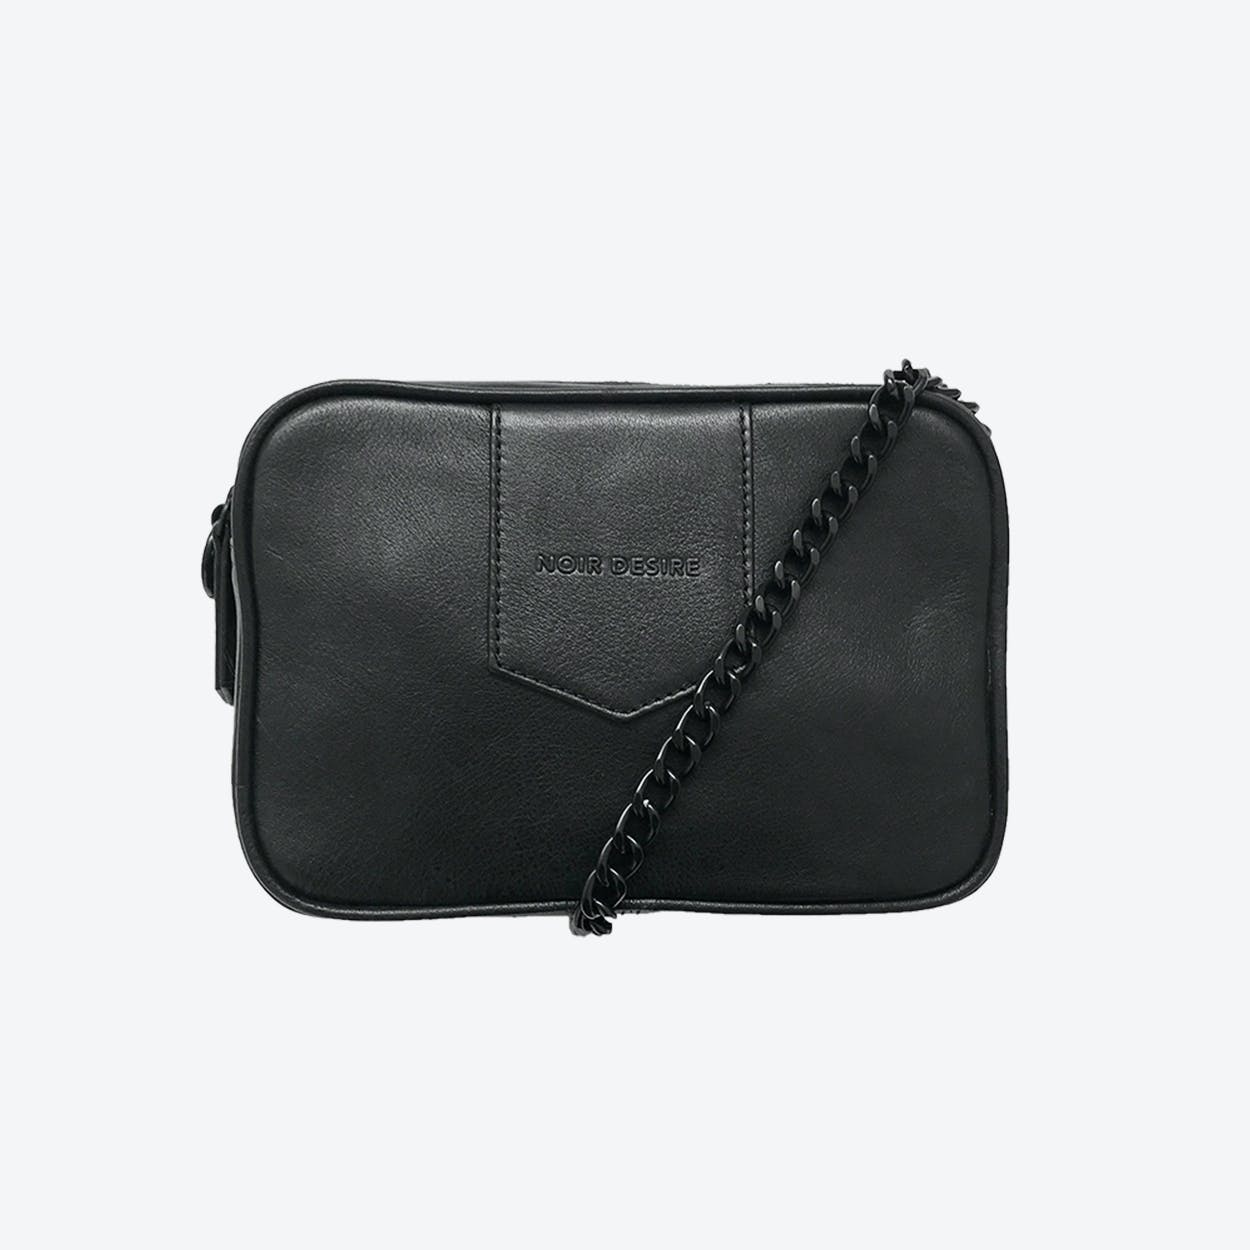 ND Lunel Sort #4 - Crossbody Leather Bag